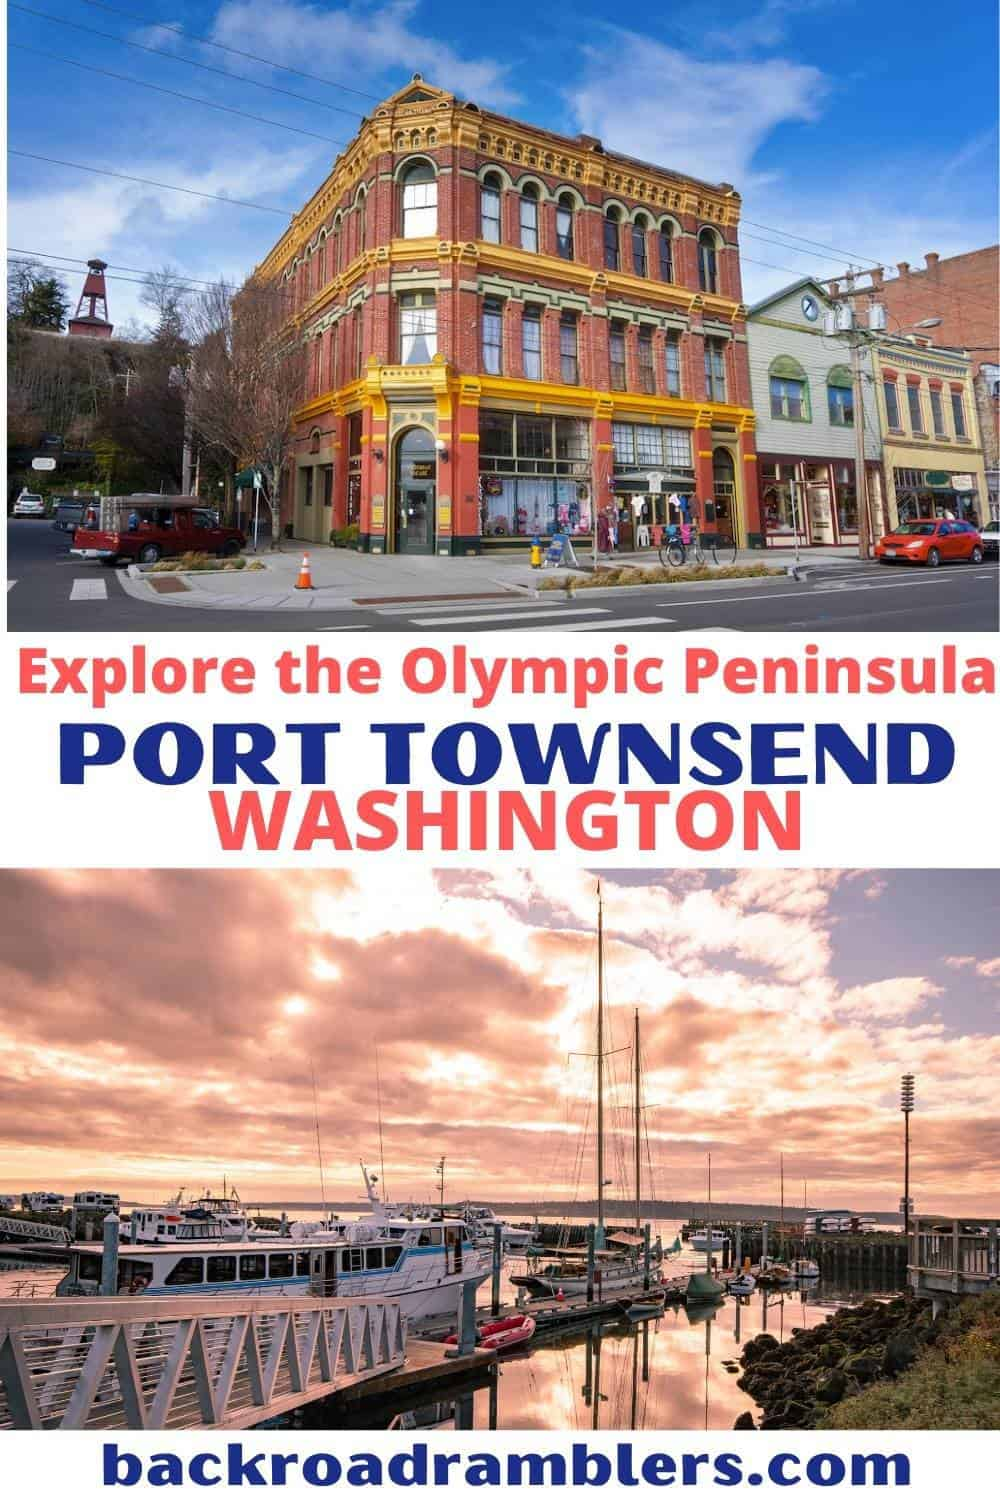 A collage of photos featuring downtown Port Townsend, Washington. Text overlay: Explore the Olympic Peninsula - Port Townsend, Washington